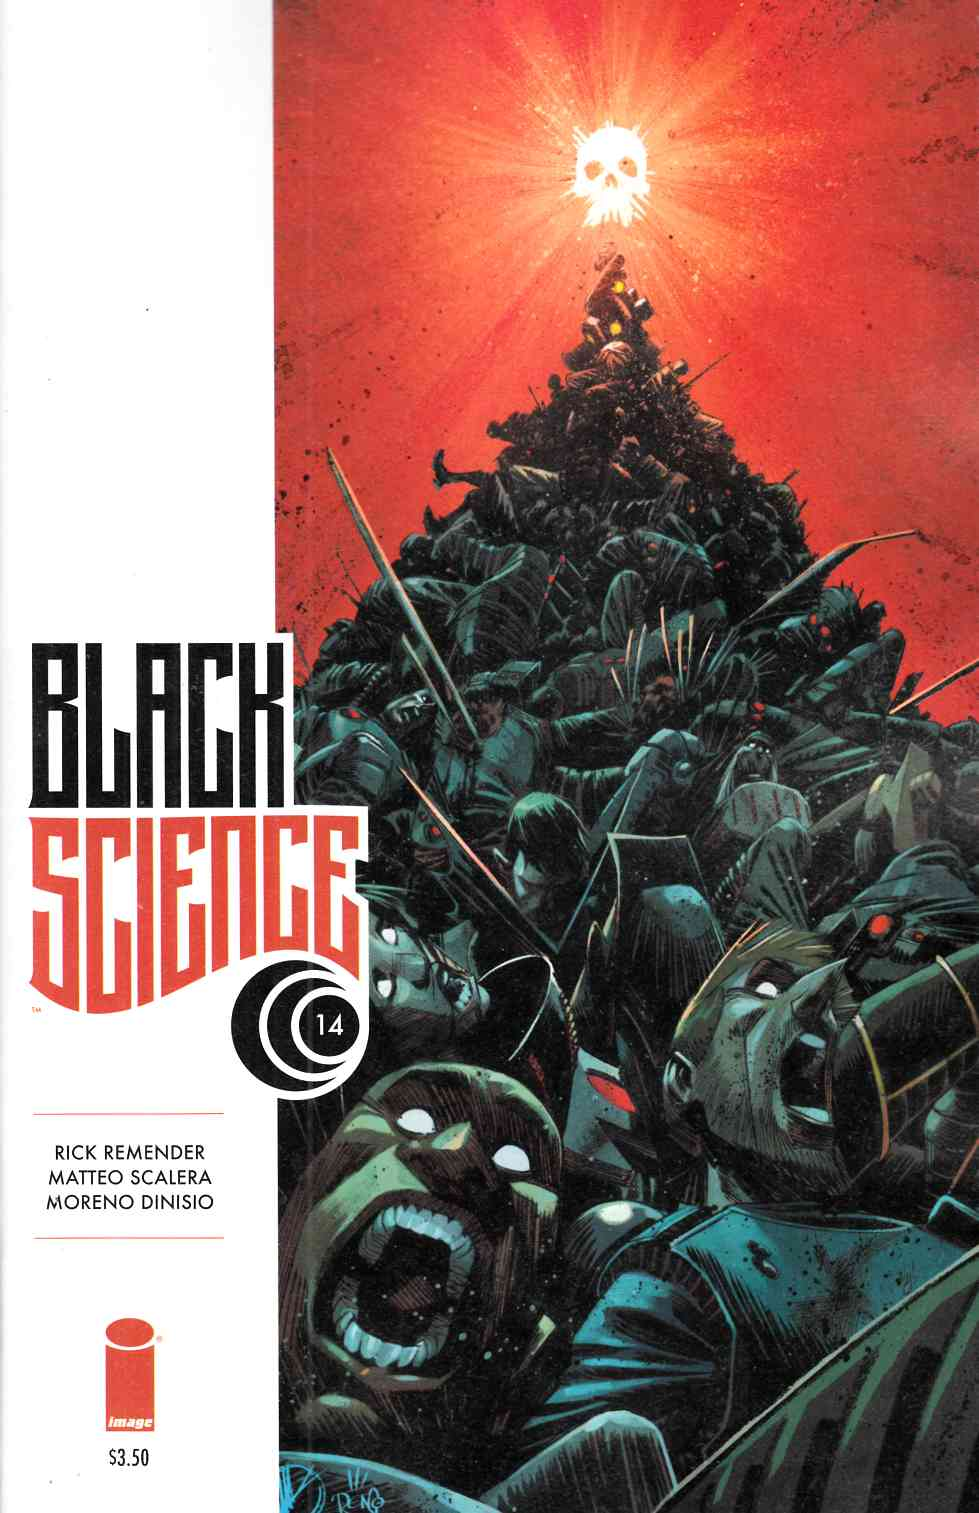 Black Science #14 [Image Comic] THUMBNAIL